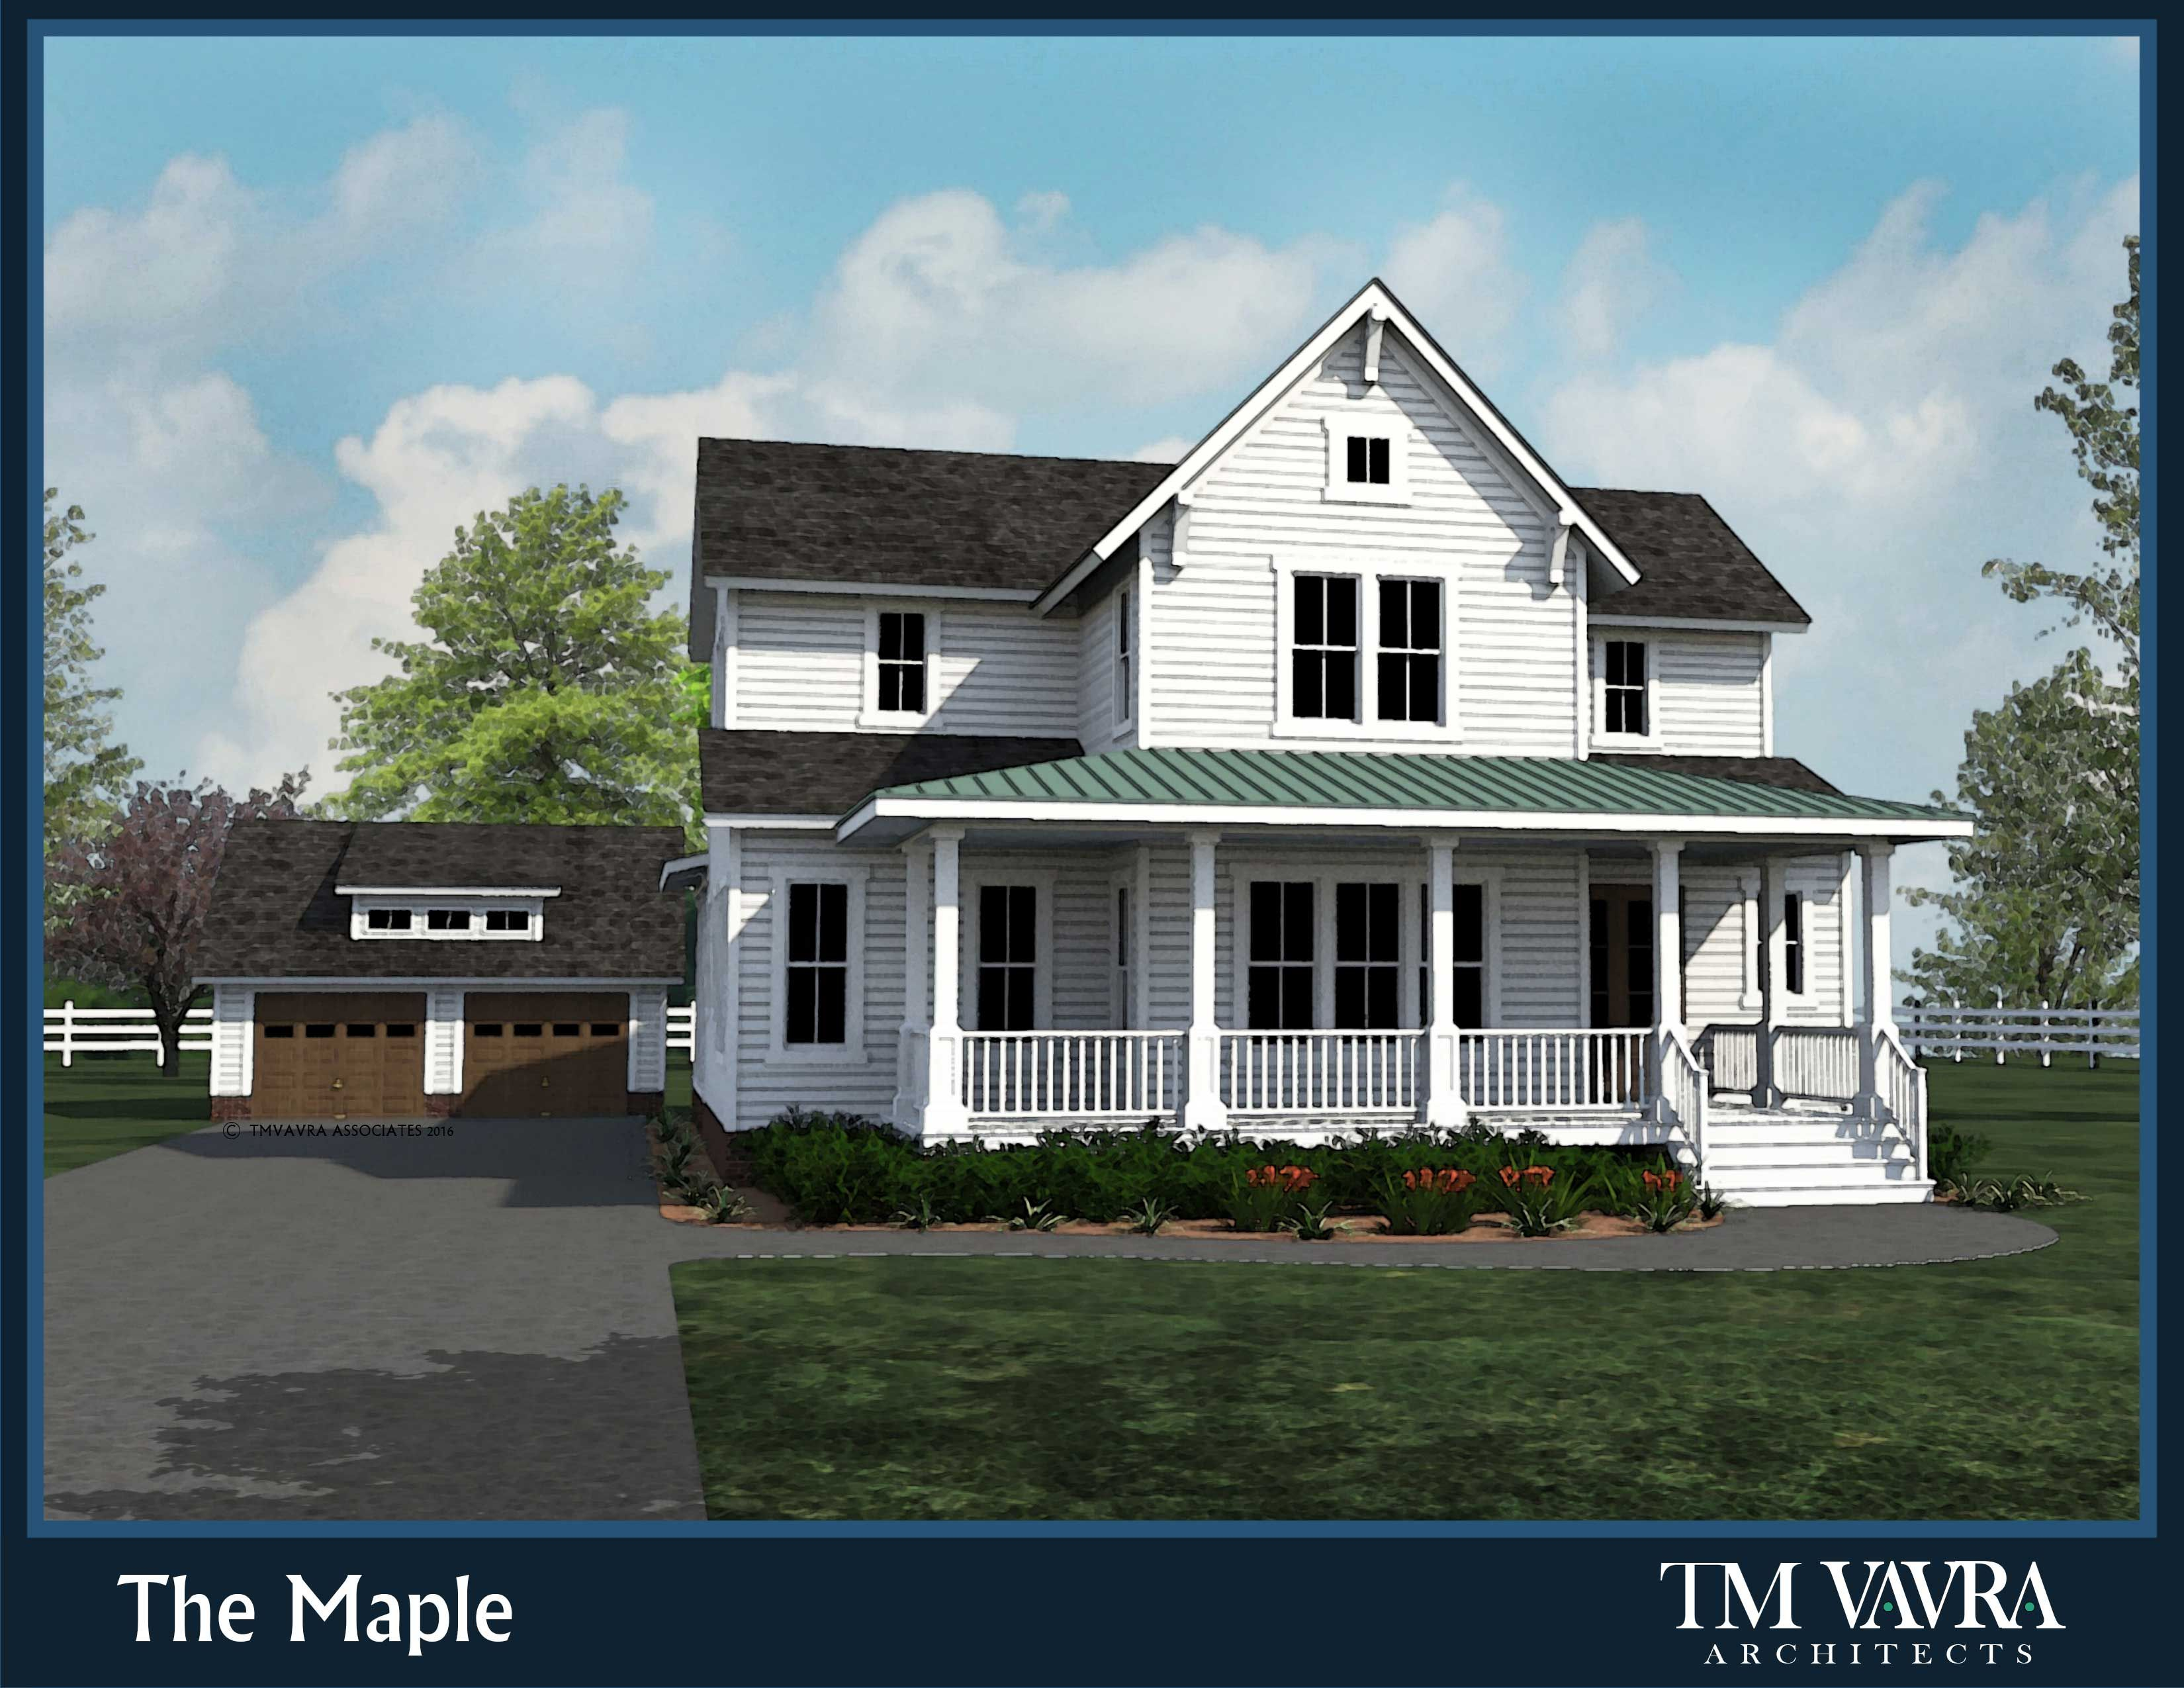 The Maple By Tm Vavra Architects Is A Sure Fit If You Are Looking For A Southern Farmhouse Desig Farmhouse Plans Rustic House Plans Southern Living House Plans